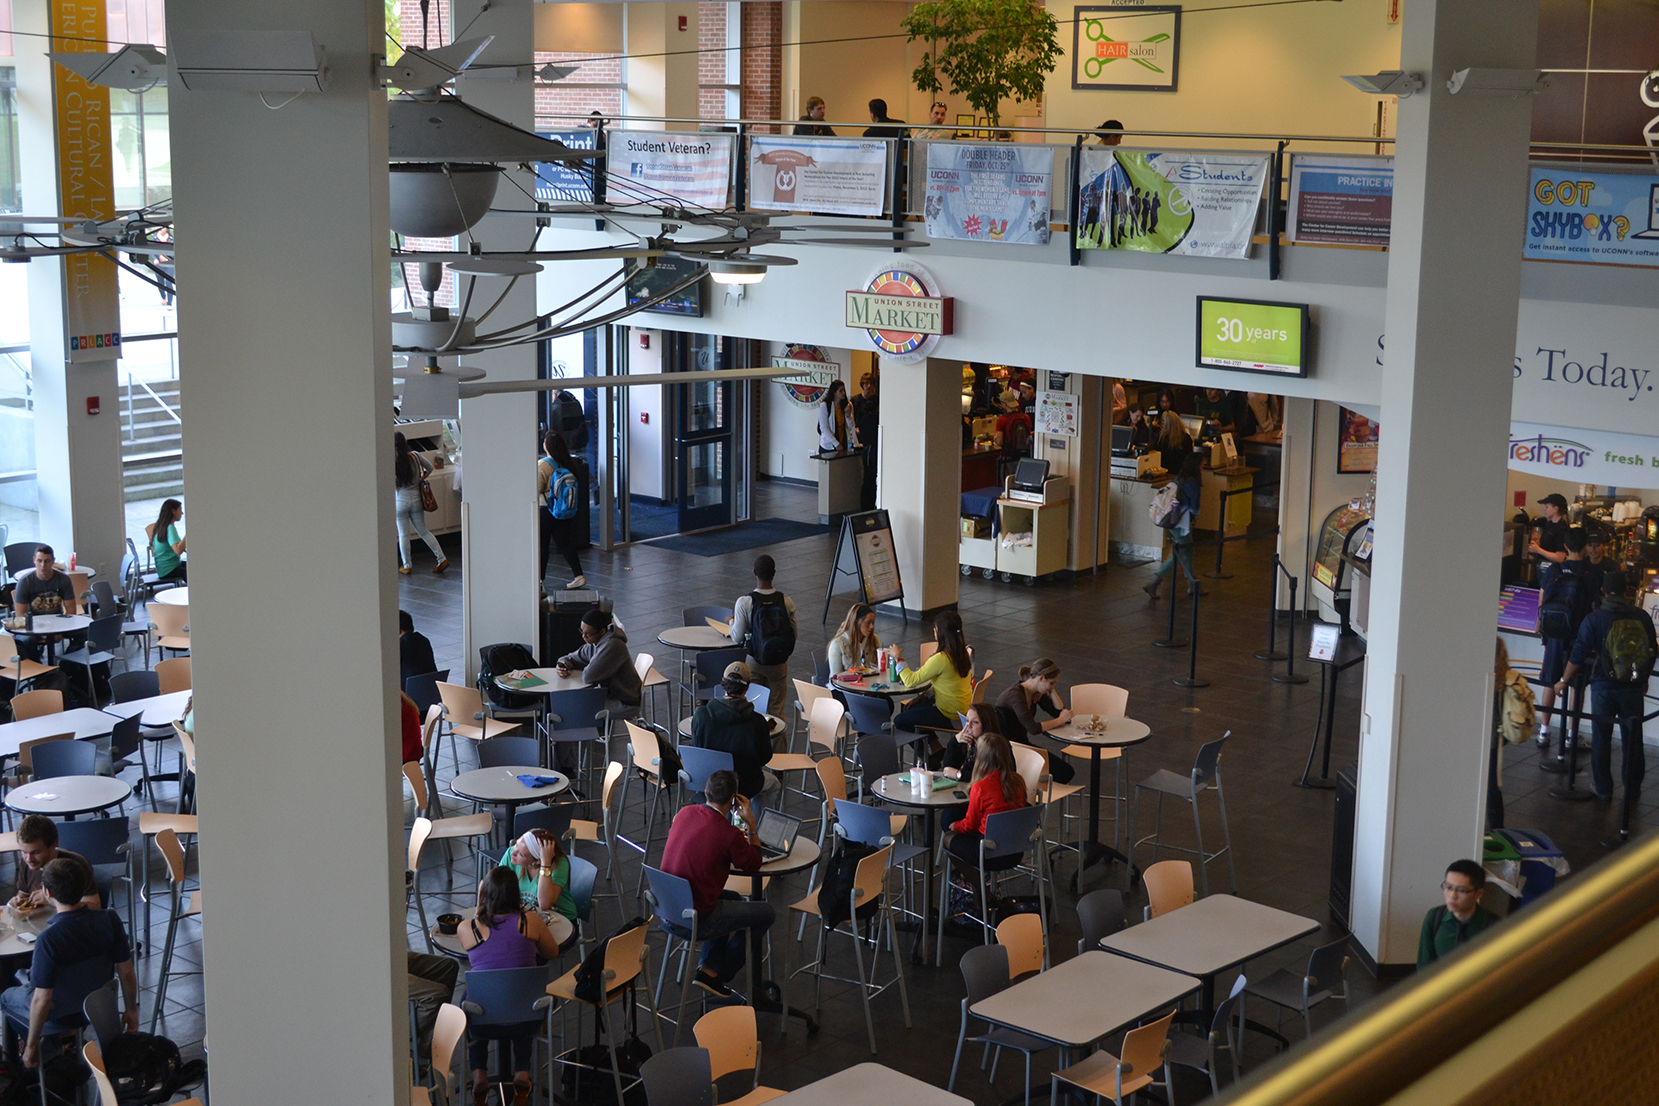 In this file photo, the UConn Student Union and the Union Street Market entrance are pictured. (File Photo/The Daily Campus)